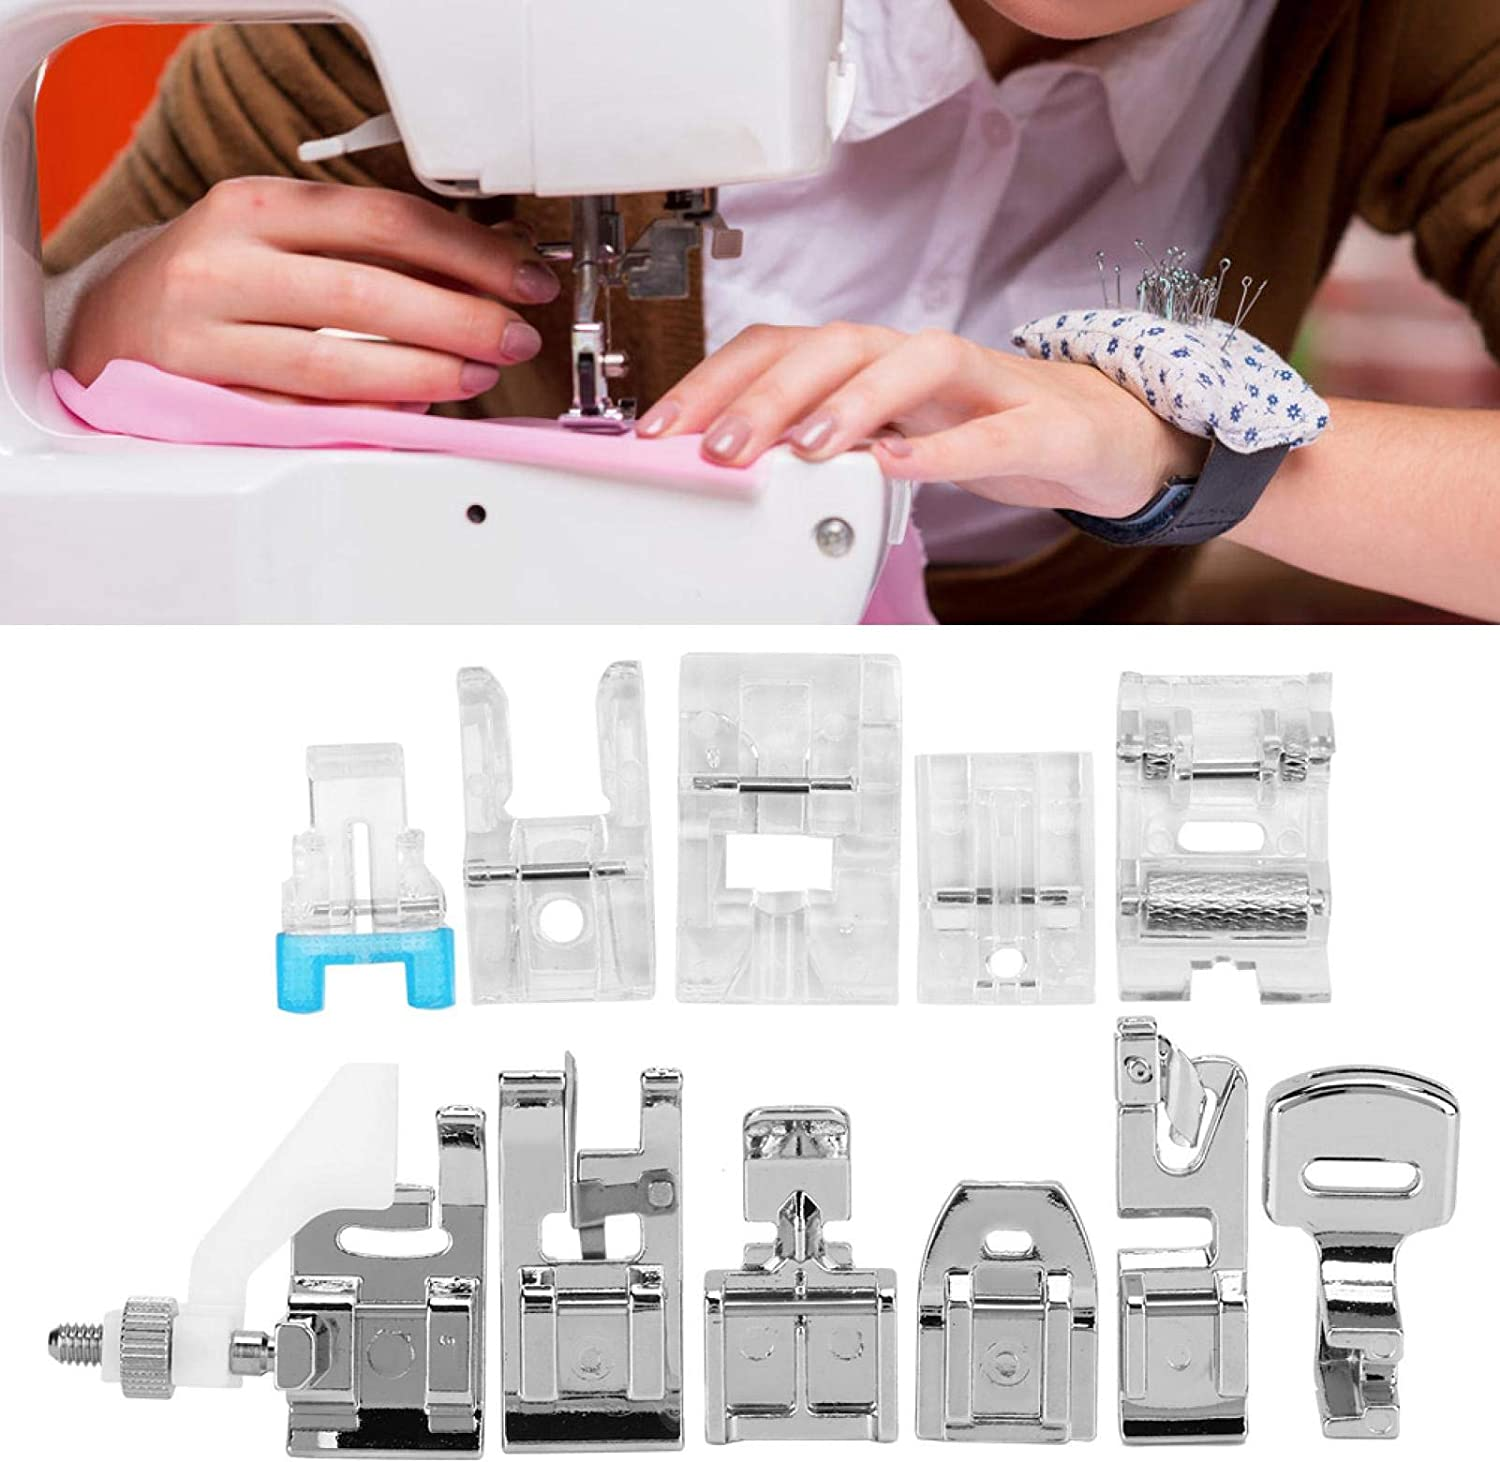 Clearance SALE! Limited time! Sewing Machine Presser Feet Set Household Selling and selling Multifuncti 11Pcs